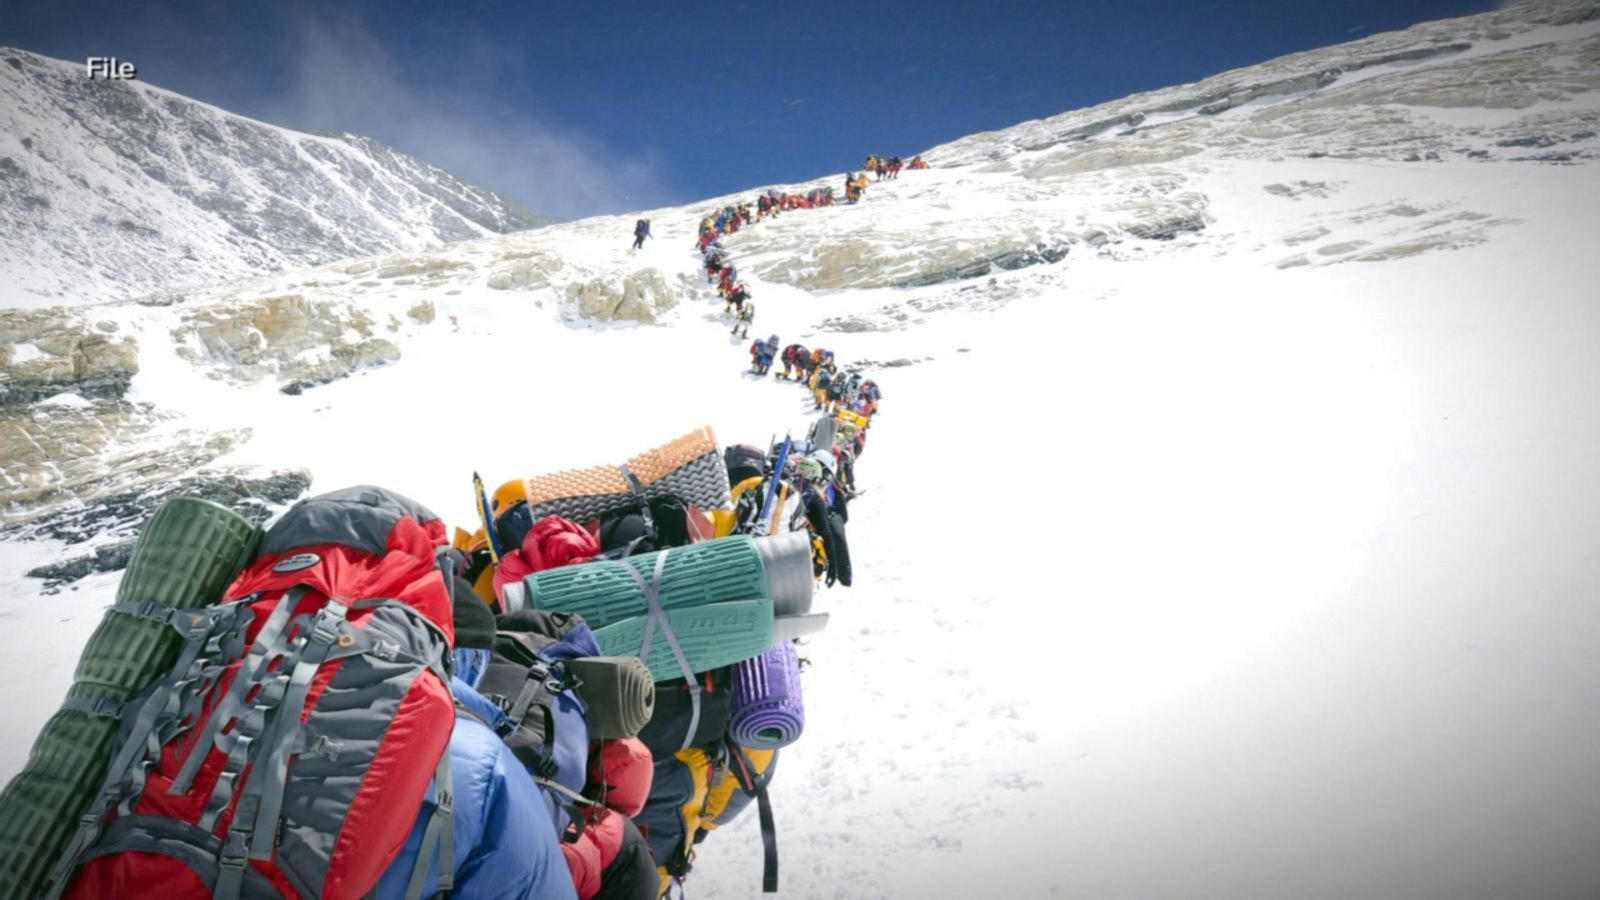 10th death in 2 months reported on Mount Everest amid long wait